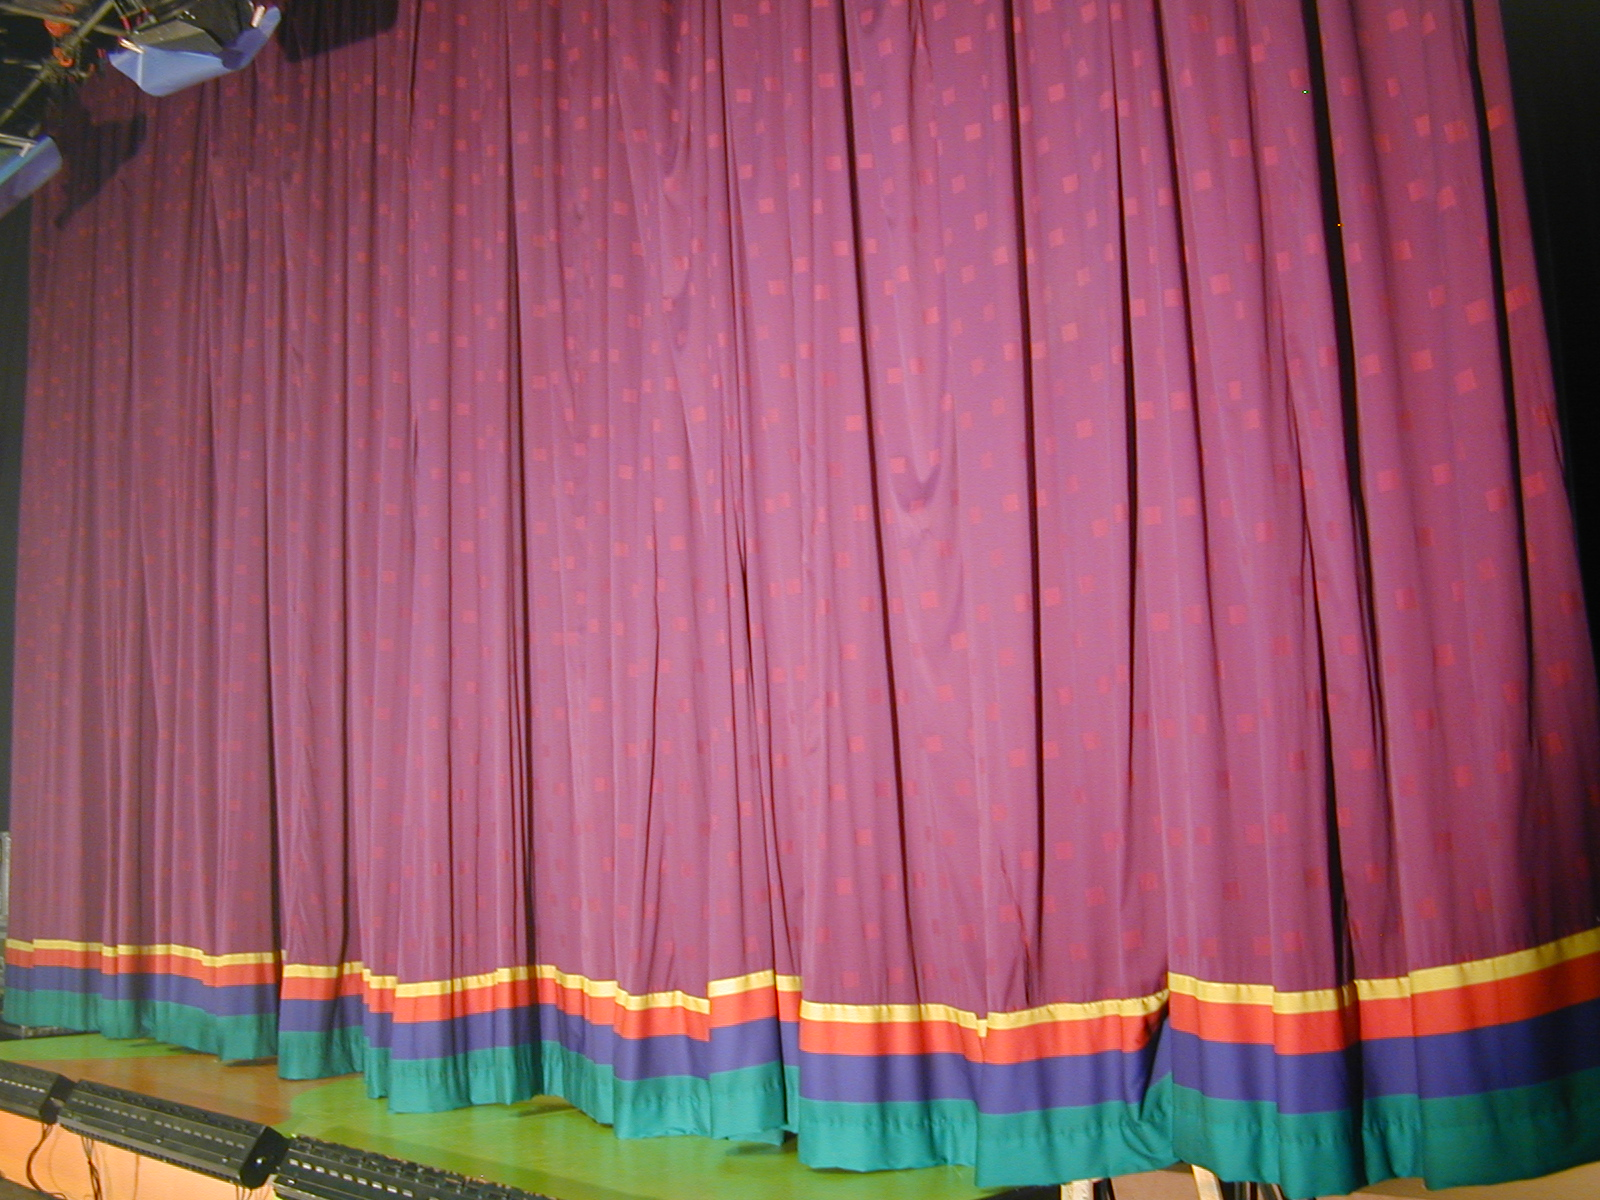 lavender patterned curtain 2 at 25'h x 24'w but 17' wide if hanging with folds.J